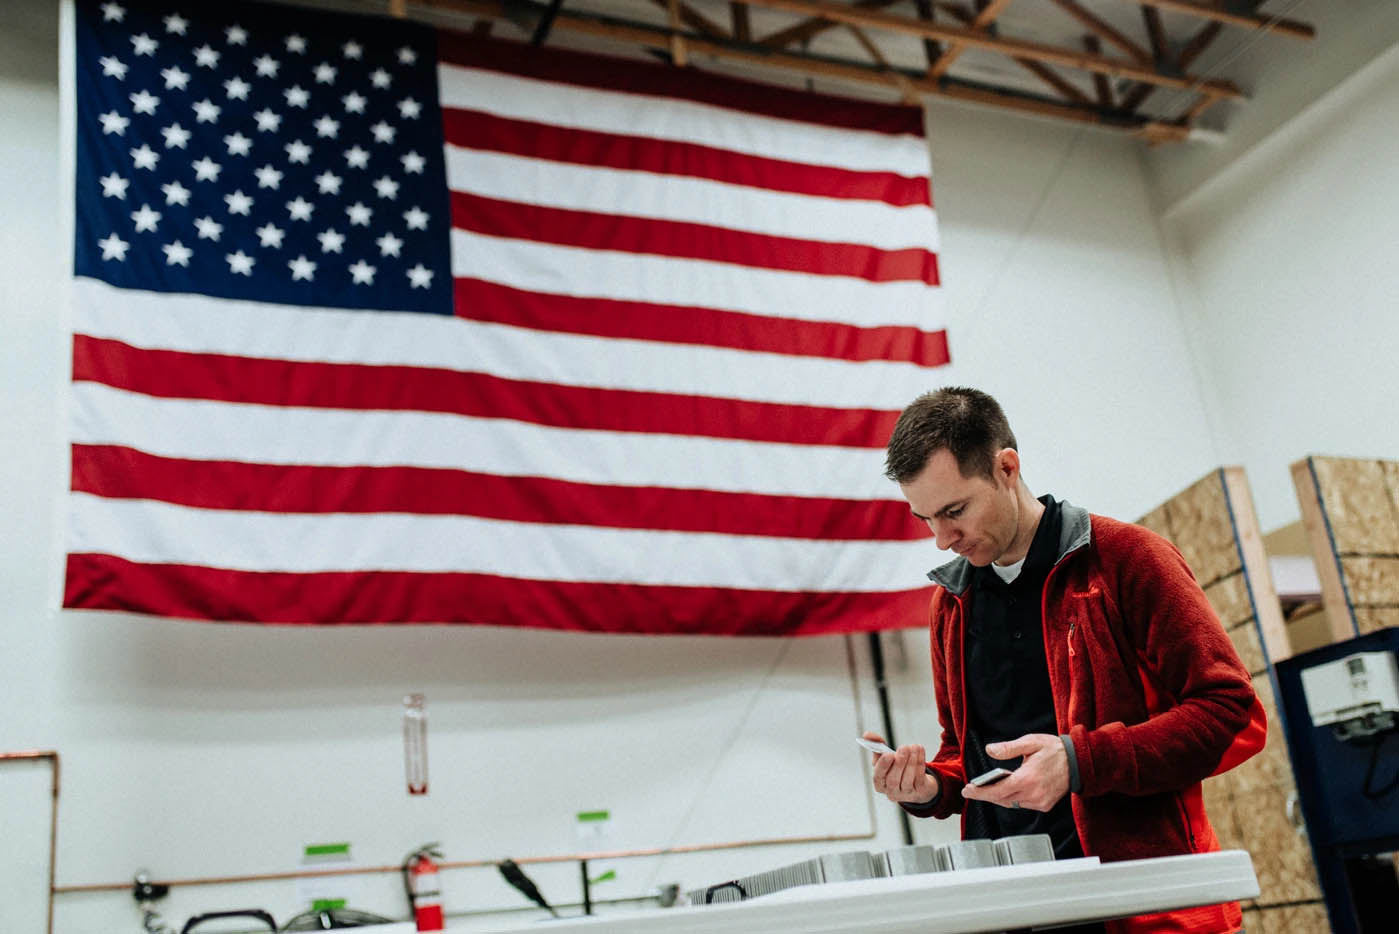 BJ Minson, founder of Grip6 inspecting his product made in USA